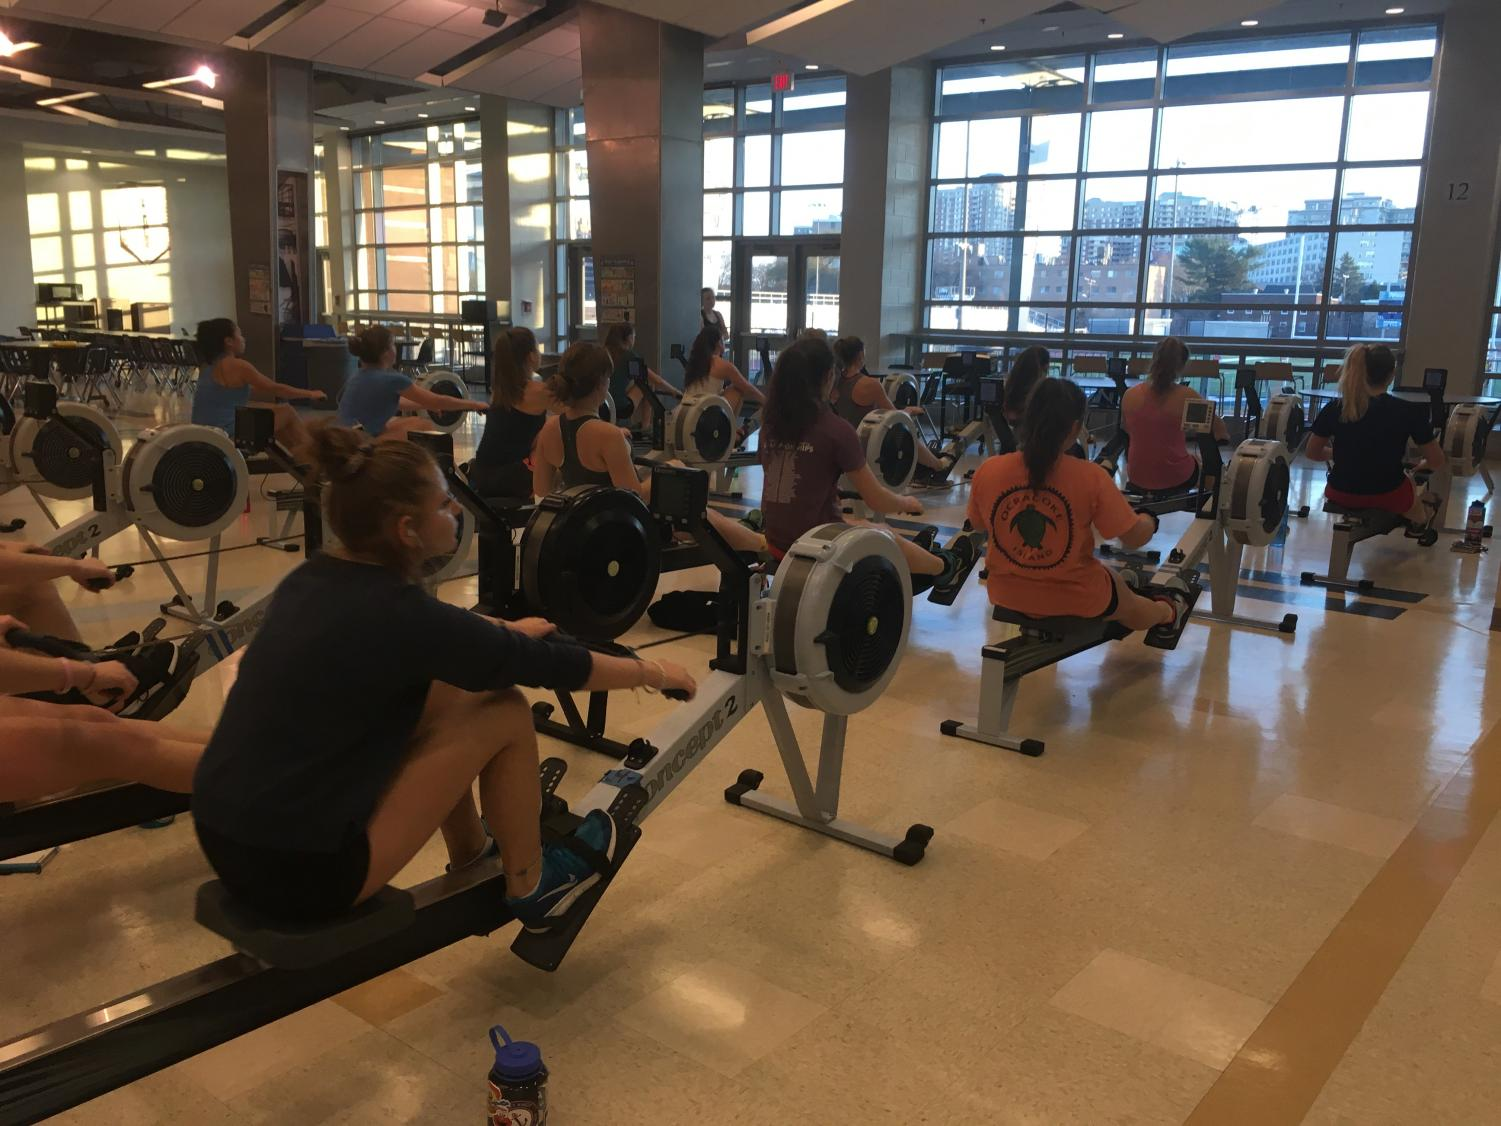 Hard at work, the girls crew team practices rowing on machines called ergometers. The crew team must raise close to 700 dollars per person in funds.